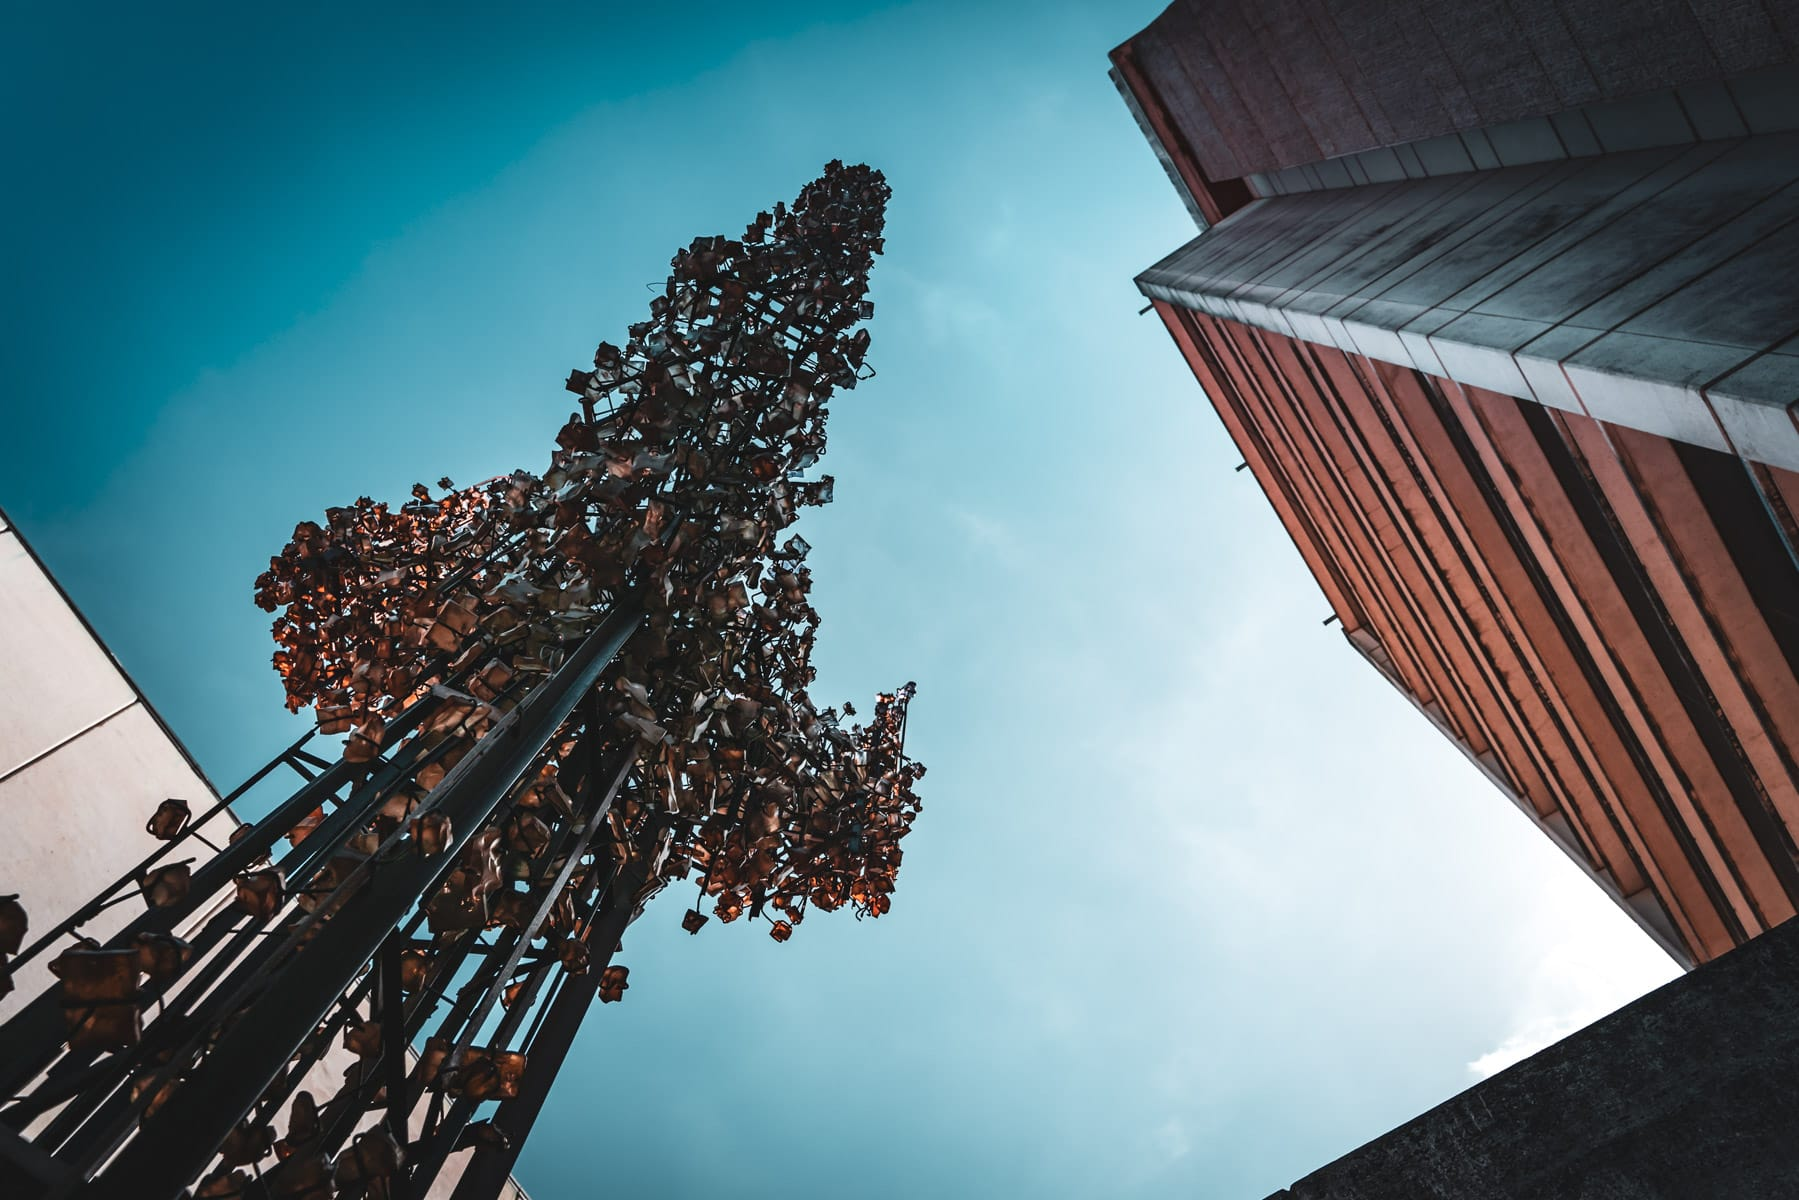 """The 36-foot-tall sculpture """"Tri-Nimbus Crystallis"""" by artists Hillard M. Stone and John Kebrle reaches towards the sky adjacent to Rudder Tower on the campus of Texas A&M University."""